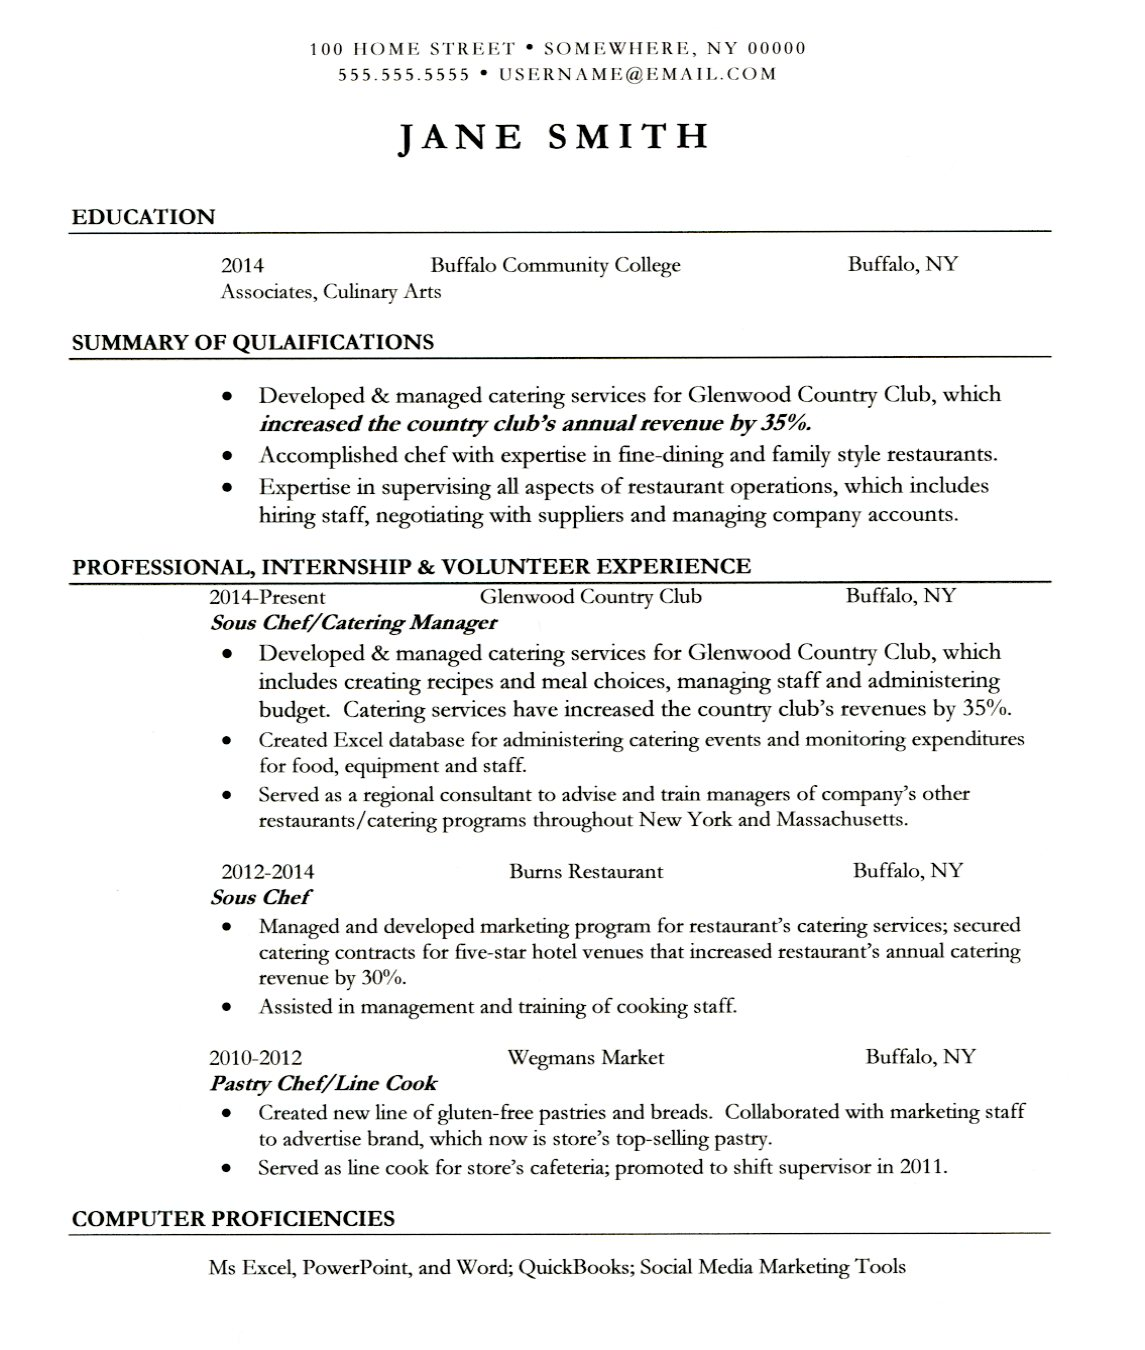 cover letter for guidance counselor position Drafting a cover letter for a professional counseling position share | by cheryl pence wolf, beta chapter, university of florida 2010-11 csi leadership fellow.